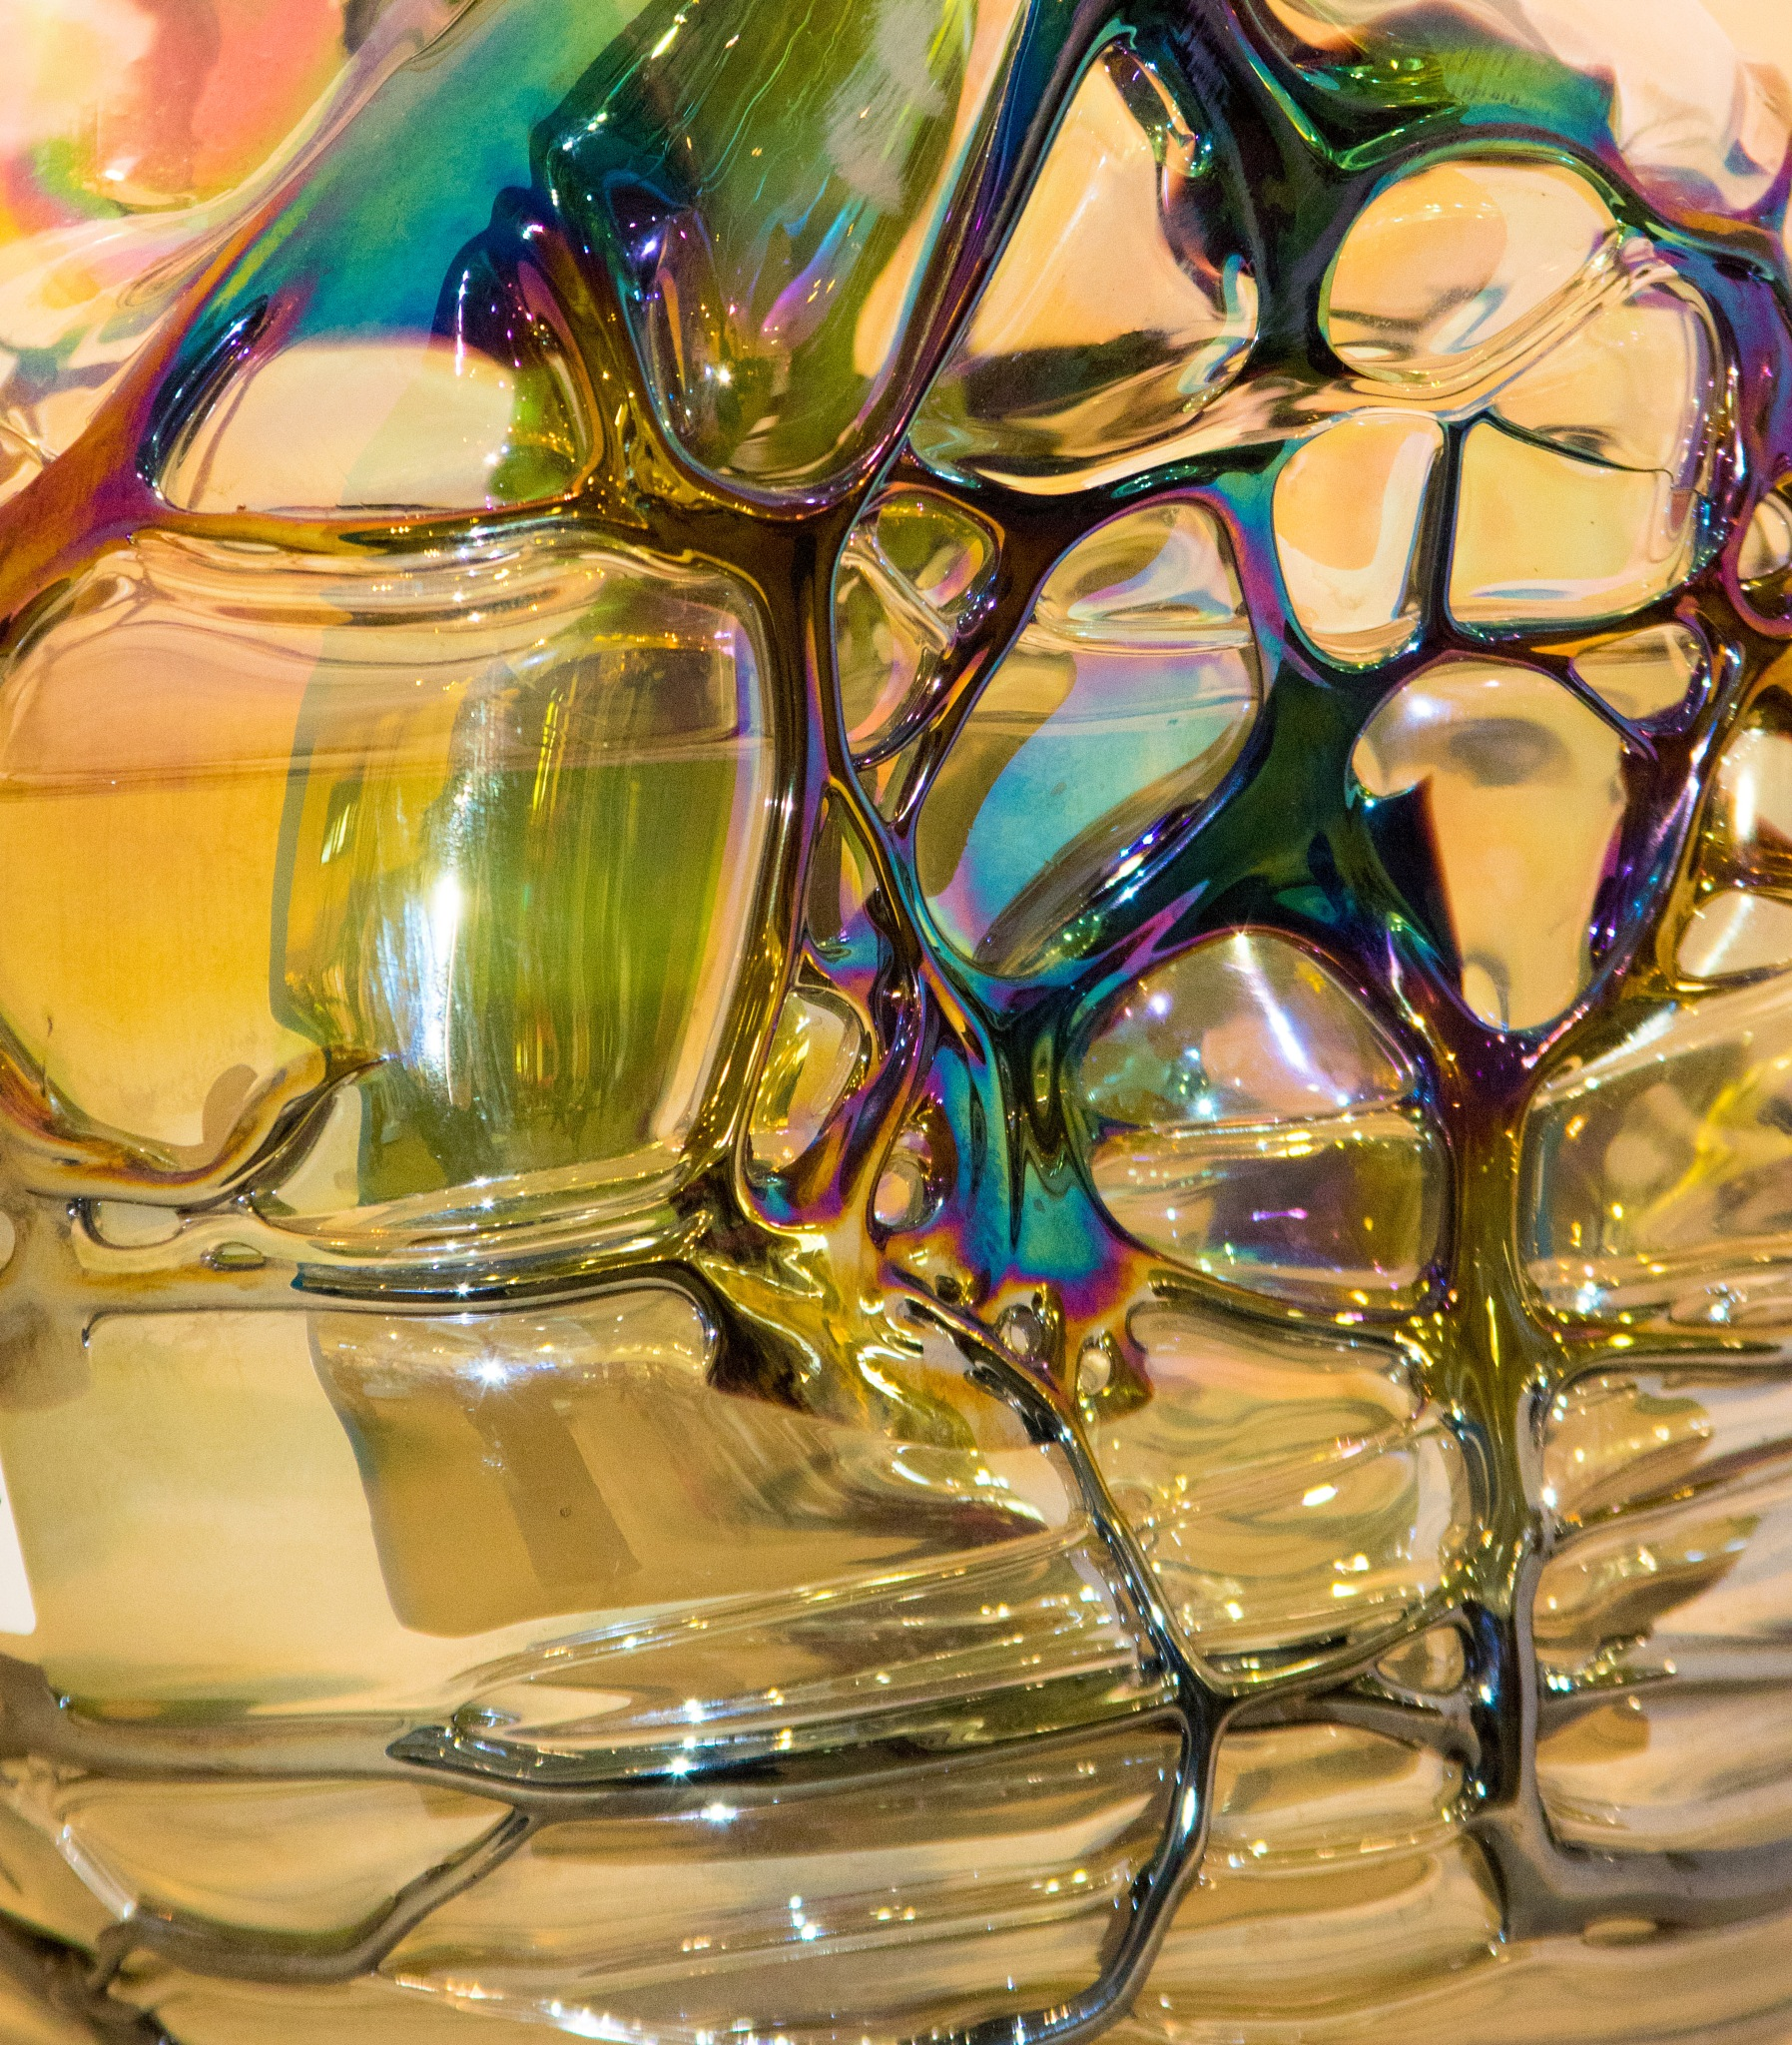 Glass Vase by ejk41